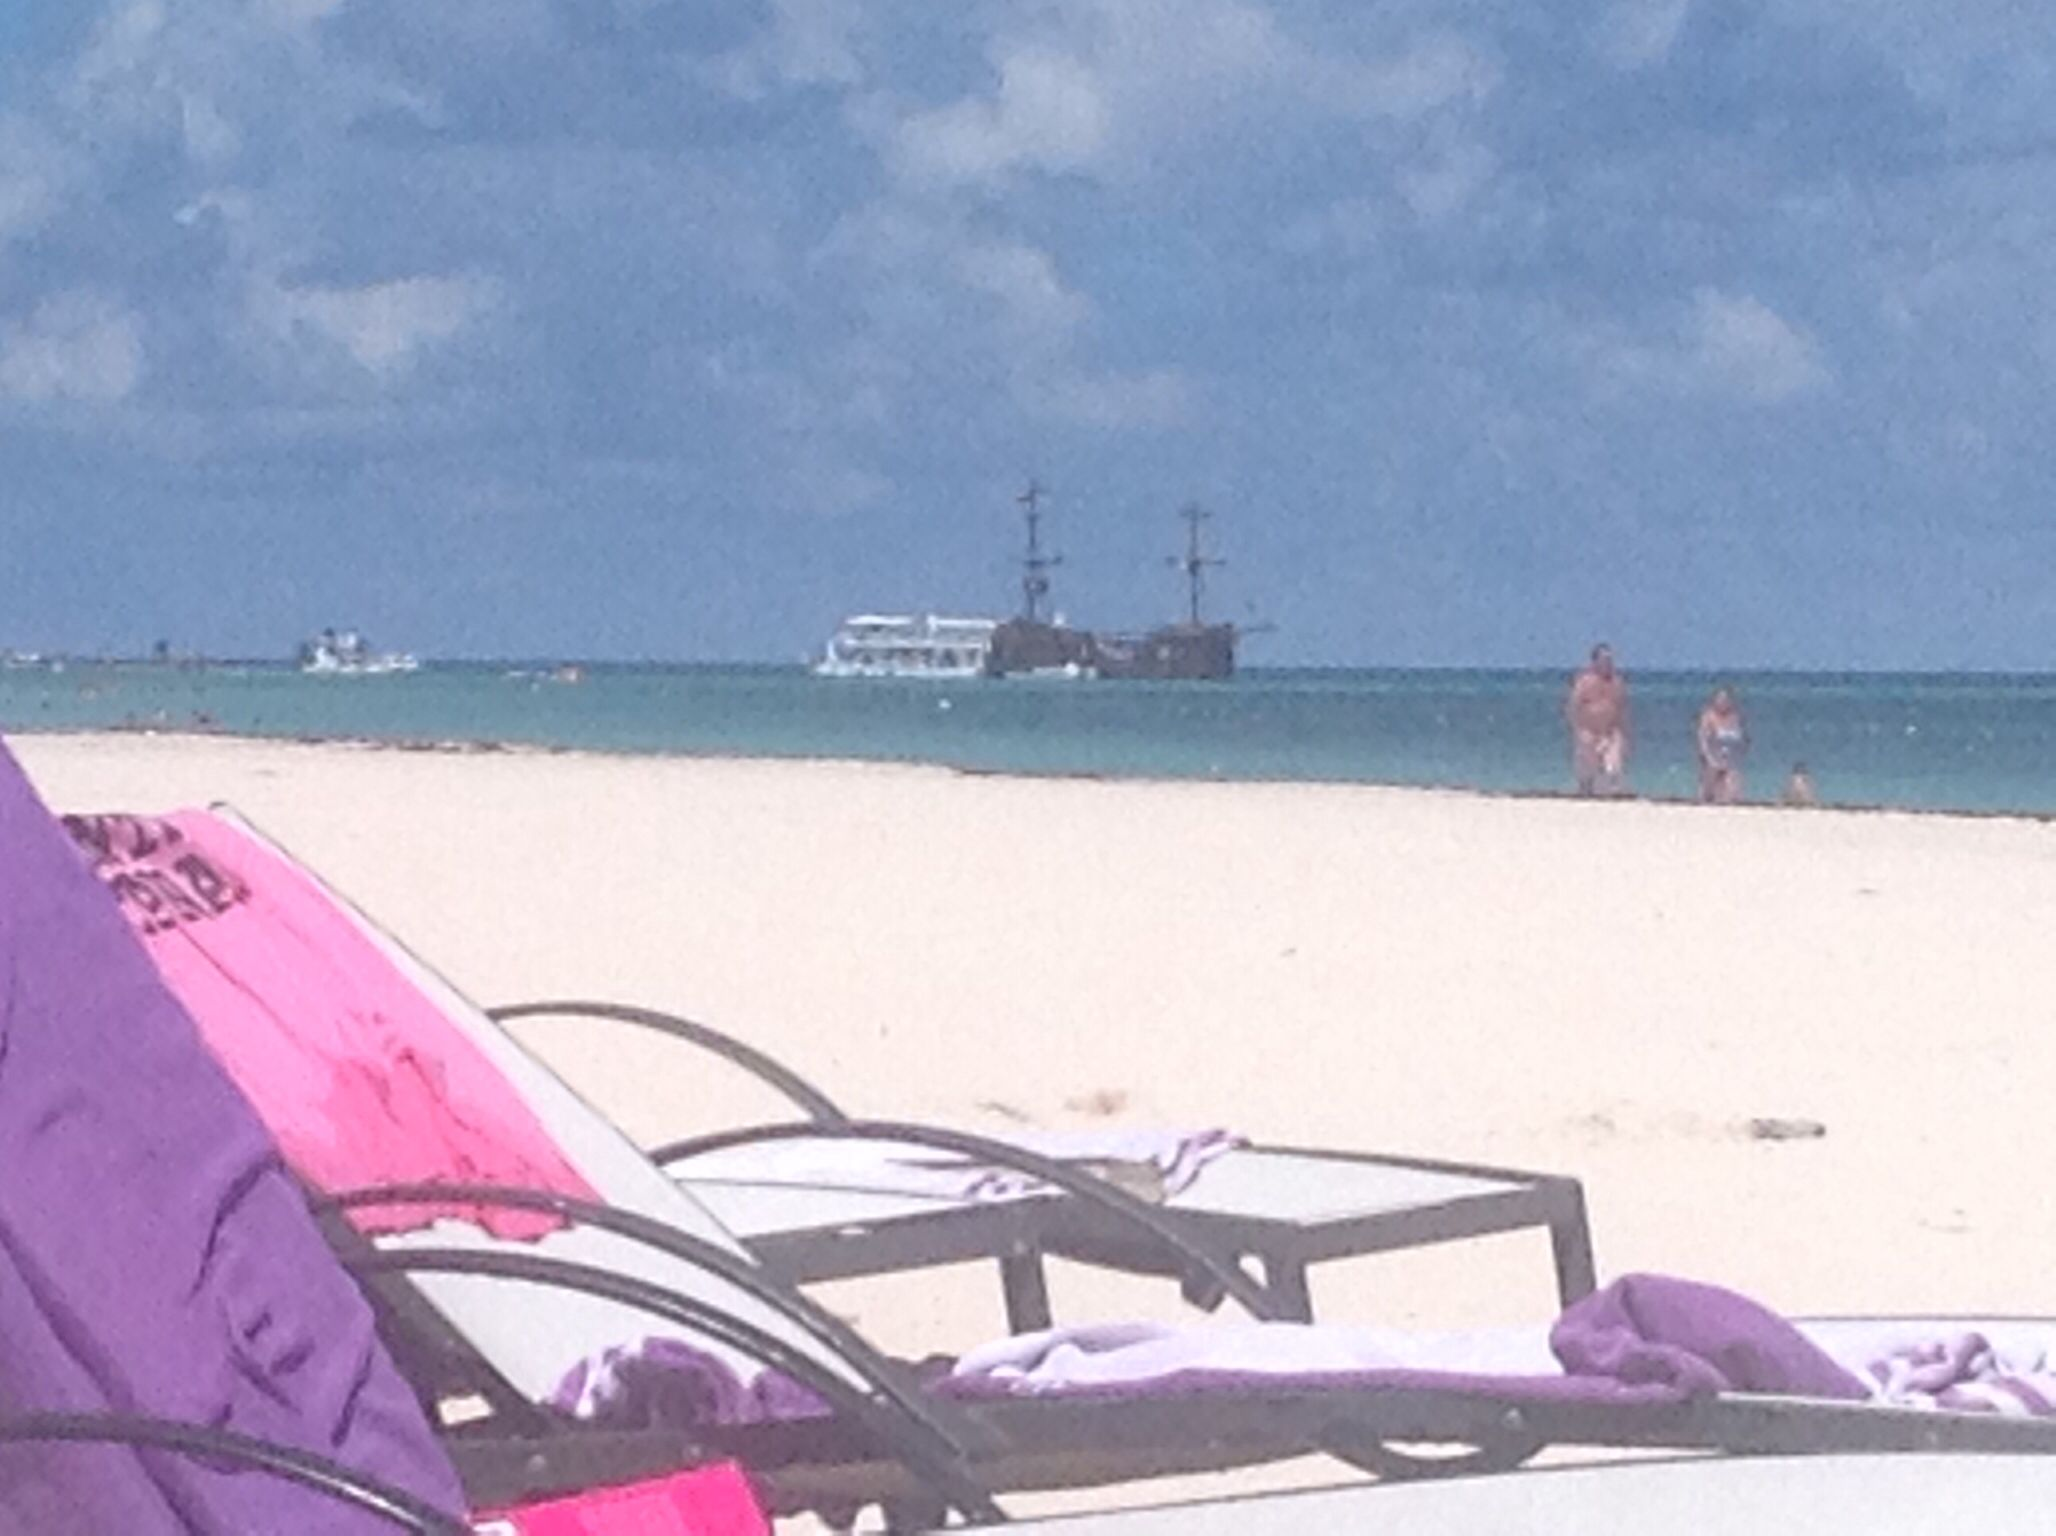 Pirate Ship Booze Cruise Our Favorite VacationPunta Cana - Pirate ship booze cruise